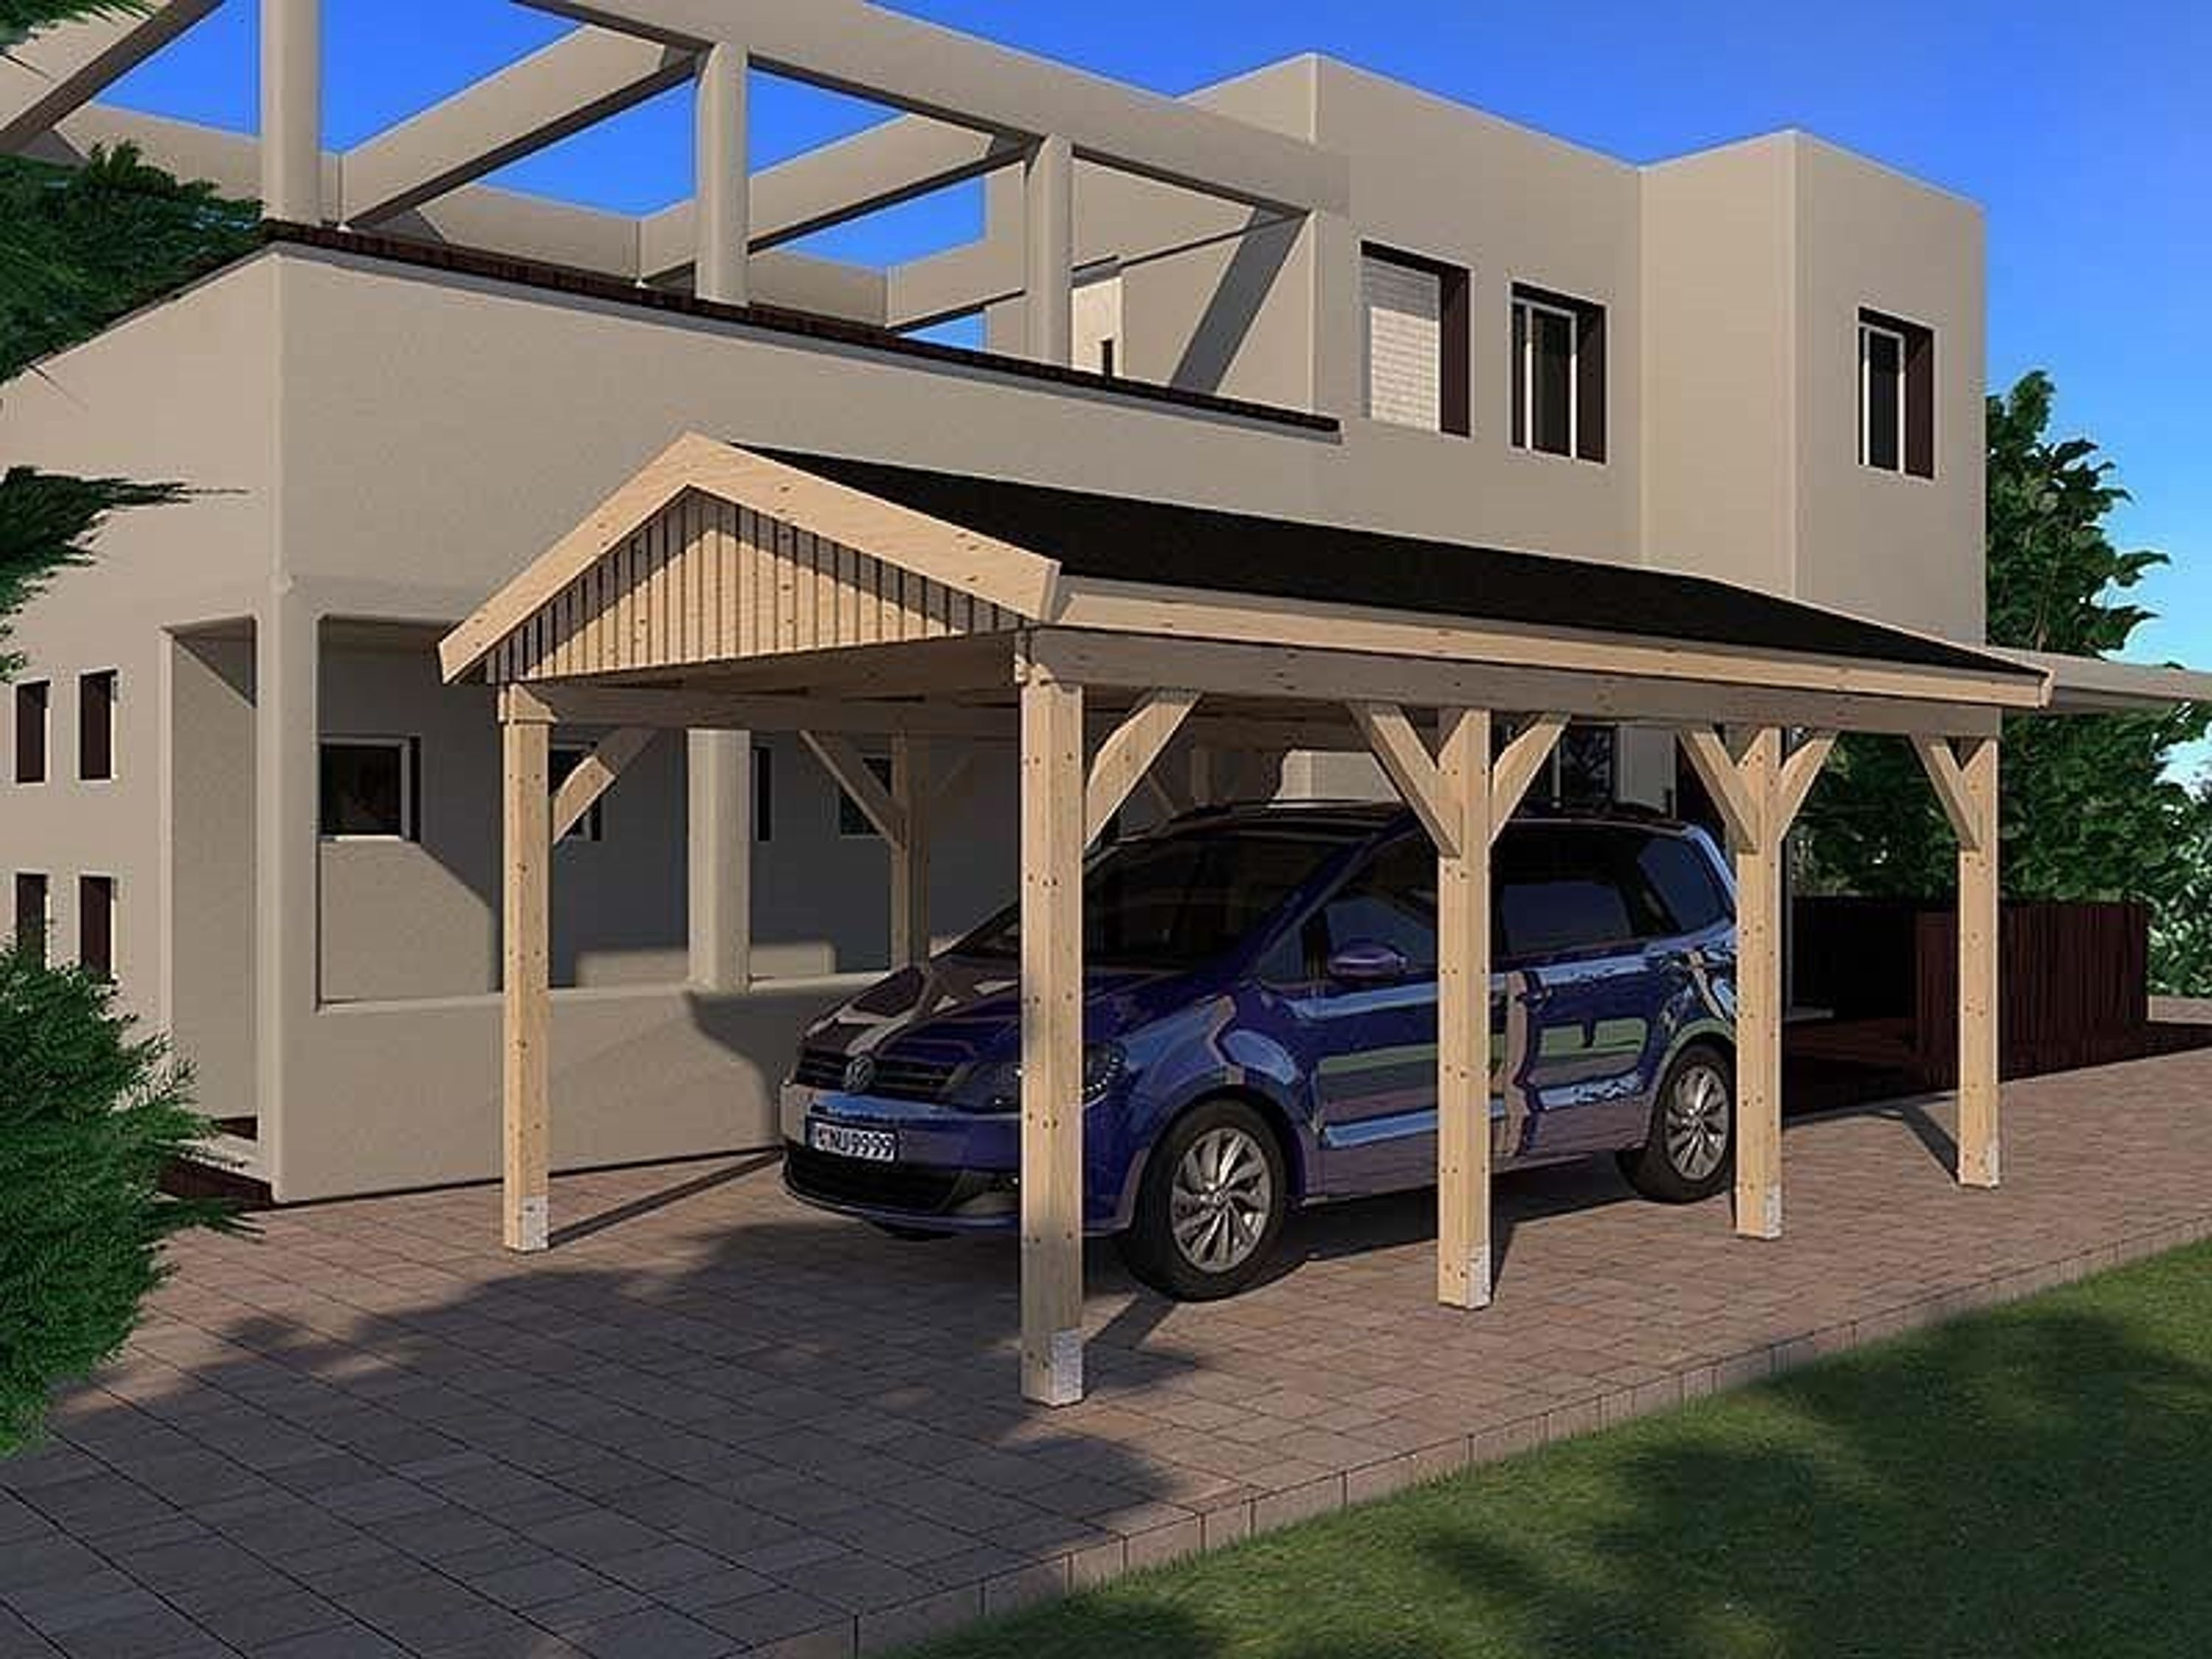 carport satteldach le mans i 350x600cm konstruktionsvollholz kvh bausatz fichte kaufen bei. Black Bedroom Furniture Sets. Home Design Ideas